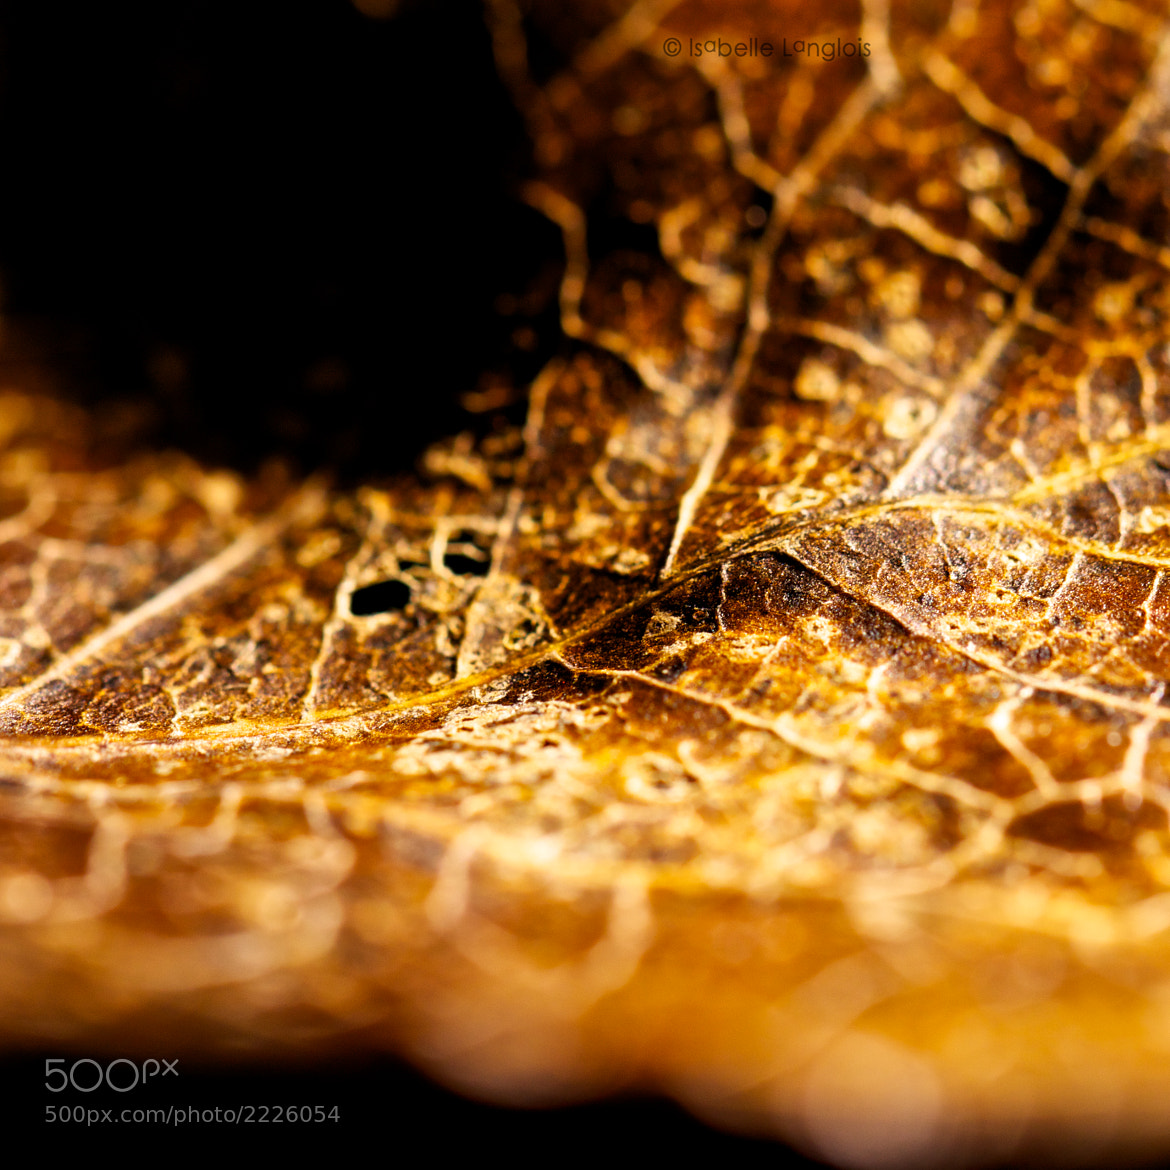 Photograph Brown leaf by Isabelle Langlois on 500px